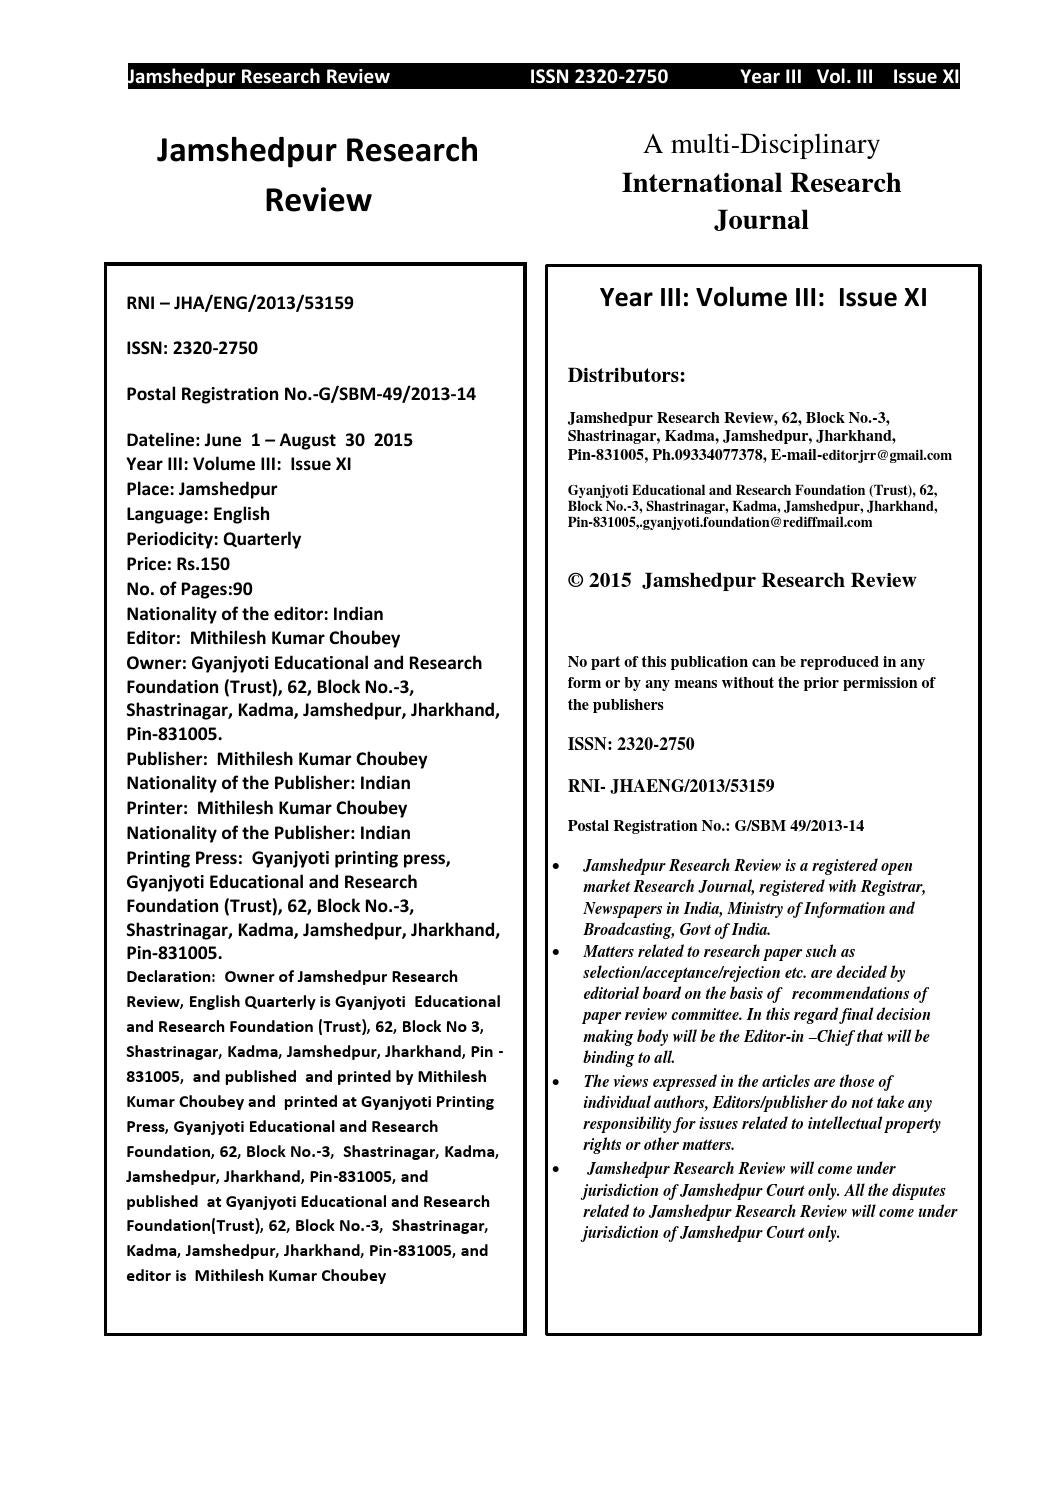 Jamshedpur research review Volume 3 issue 11 by Mithilesh